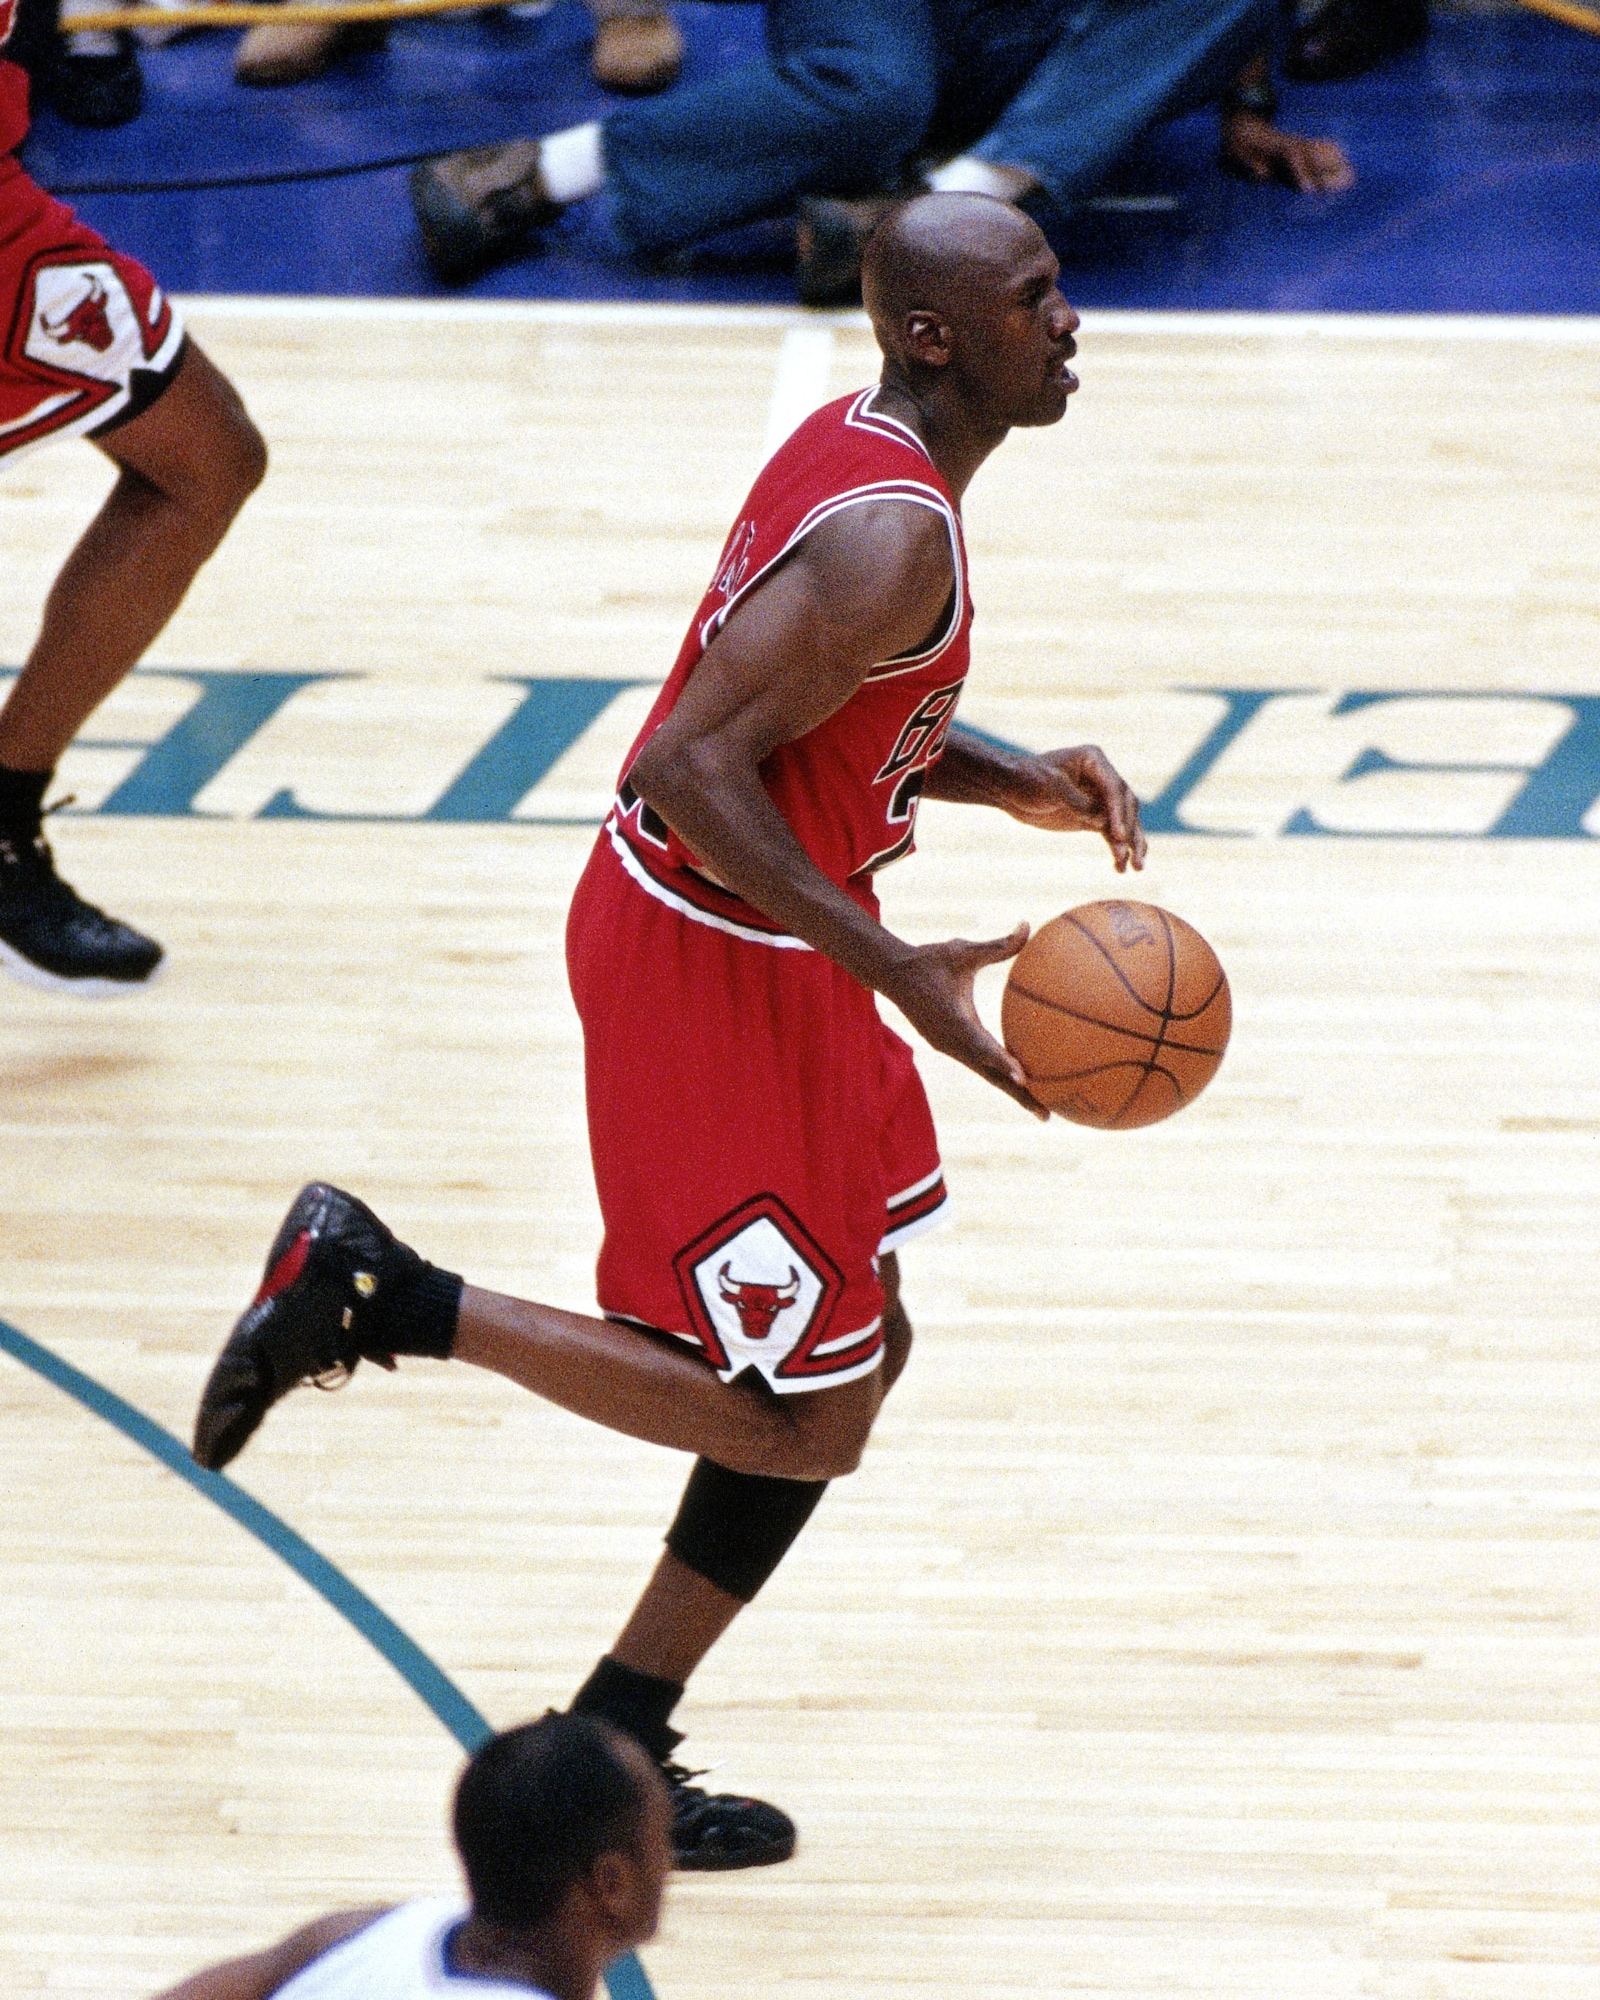 Jordan dribbles up the floor after stealing the ball from Karl Malone in the game's final moments.